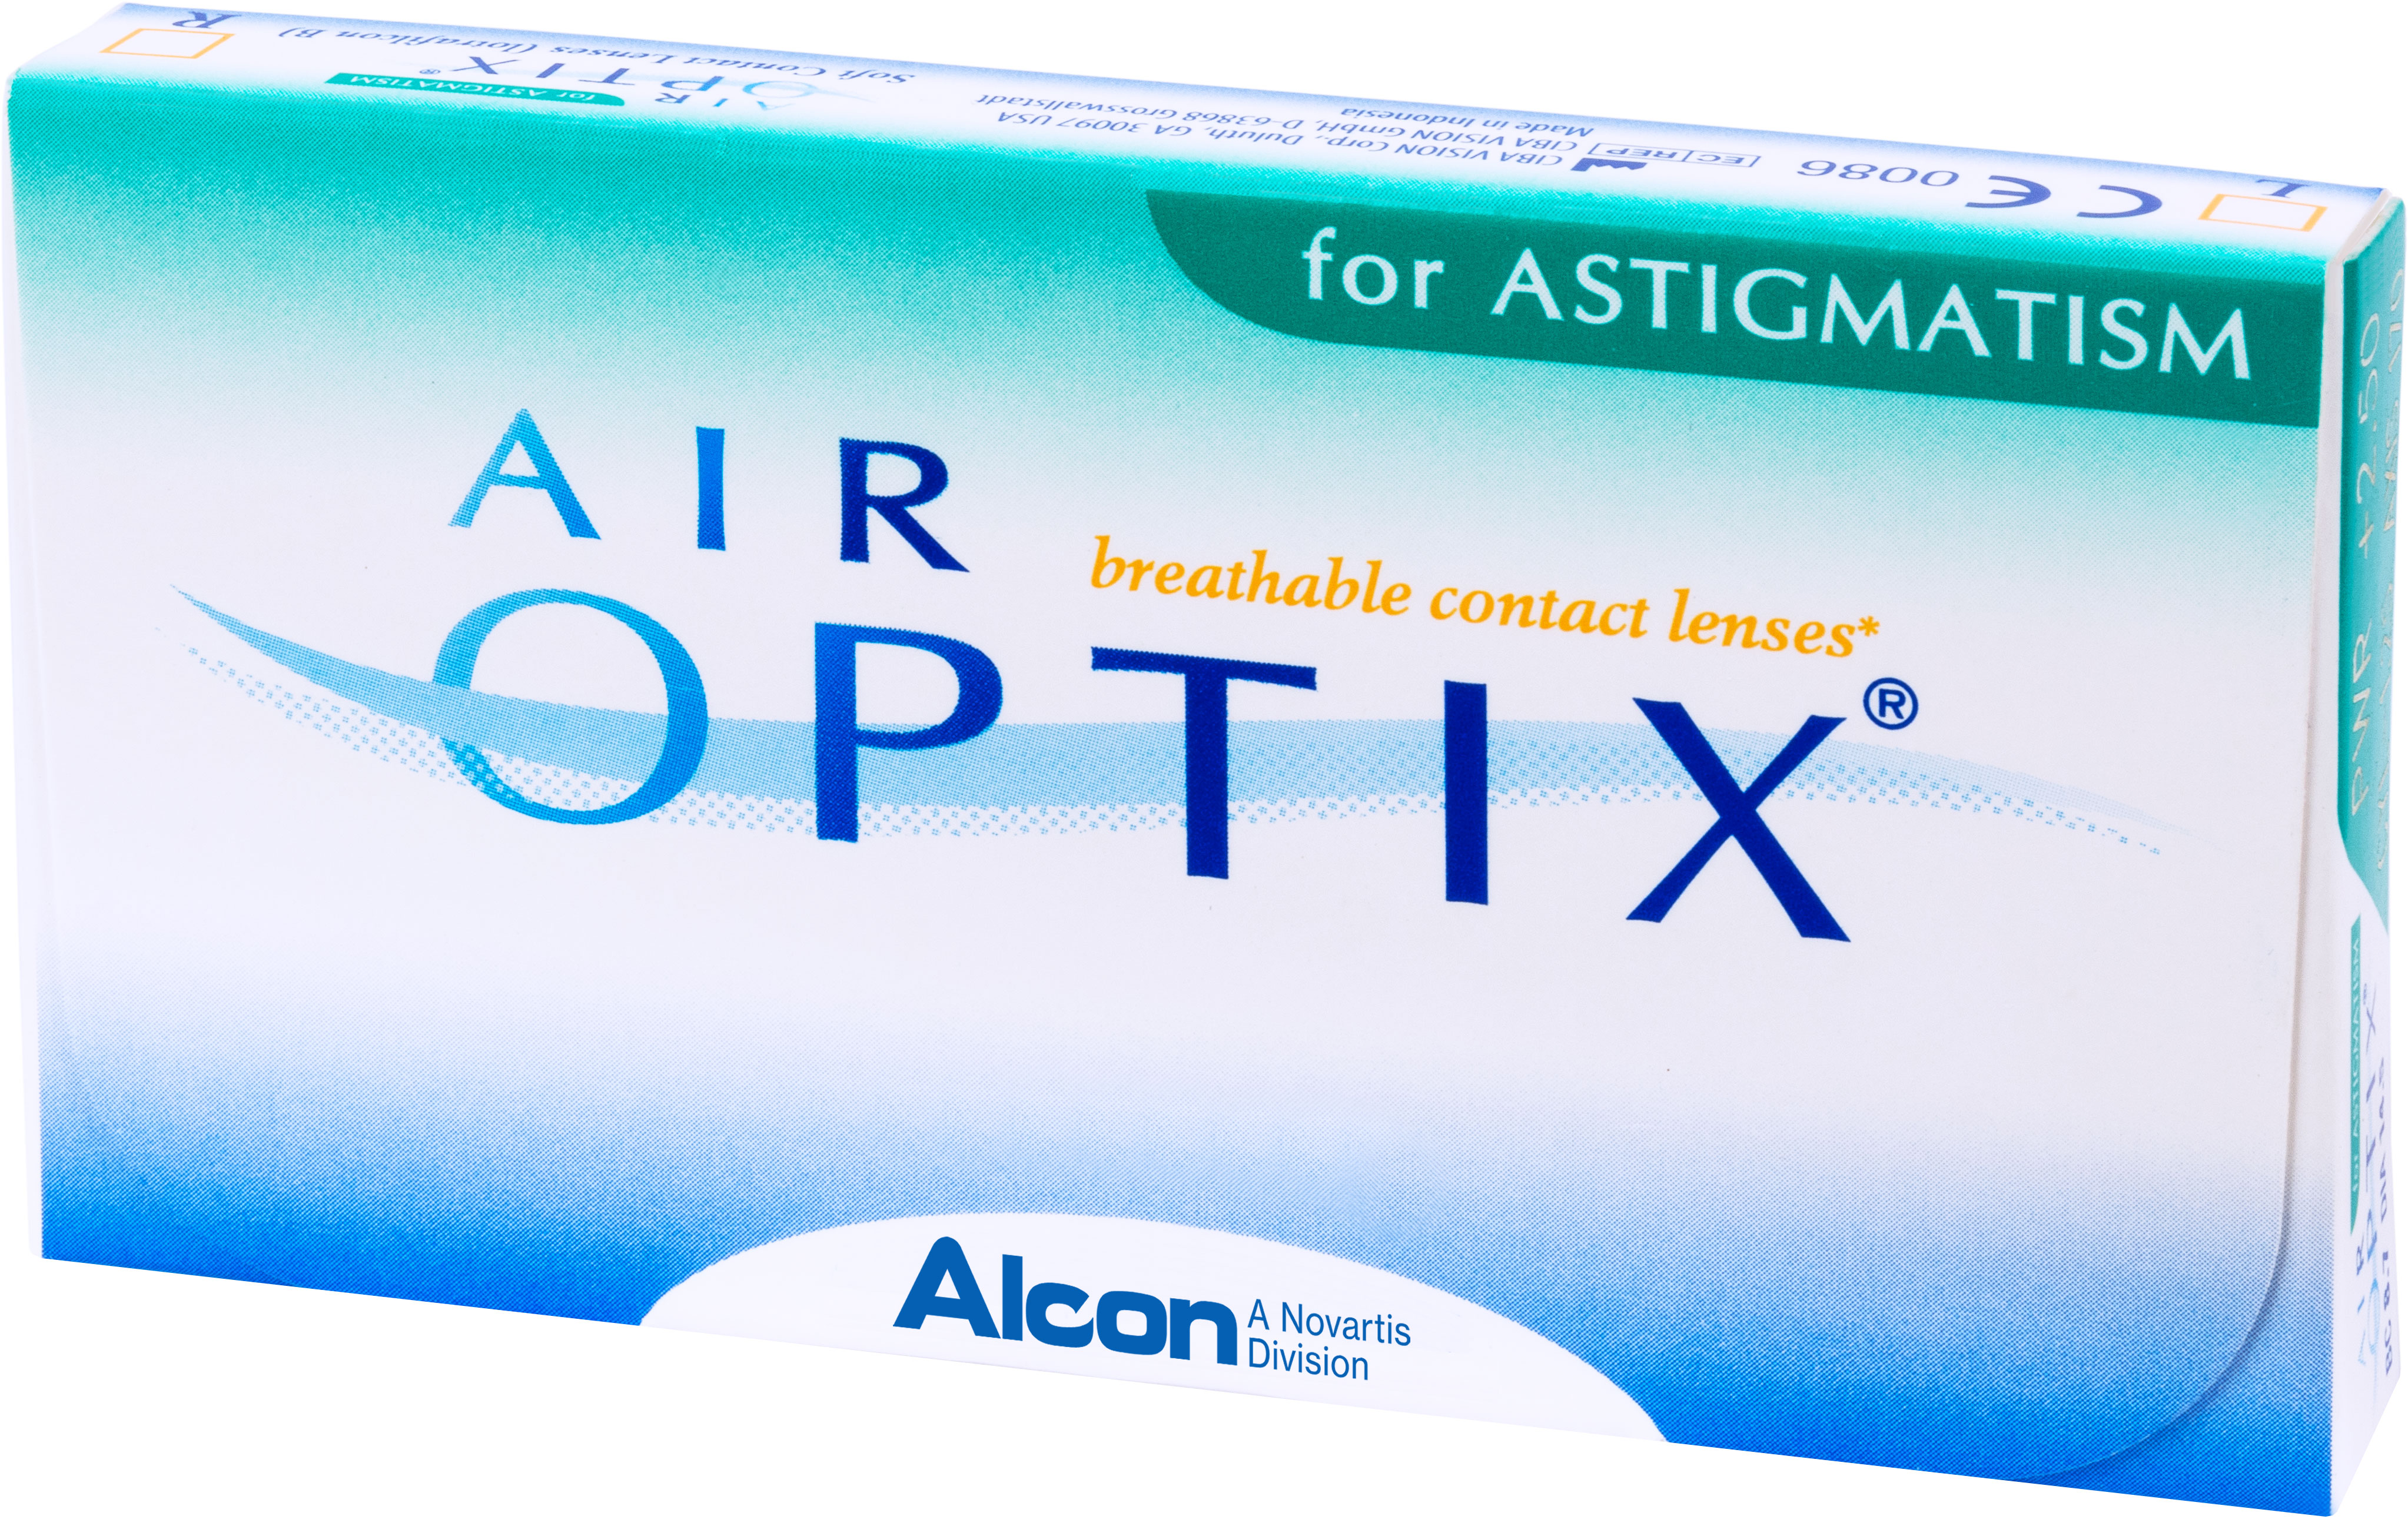 Аlcon контактные линзы Air Optix for Astigmatism 3pk /BC 8.7/DIA14.5/PWR -6.00/CYL -1.75/AXIS 90100034860with Hydraclear